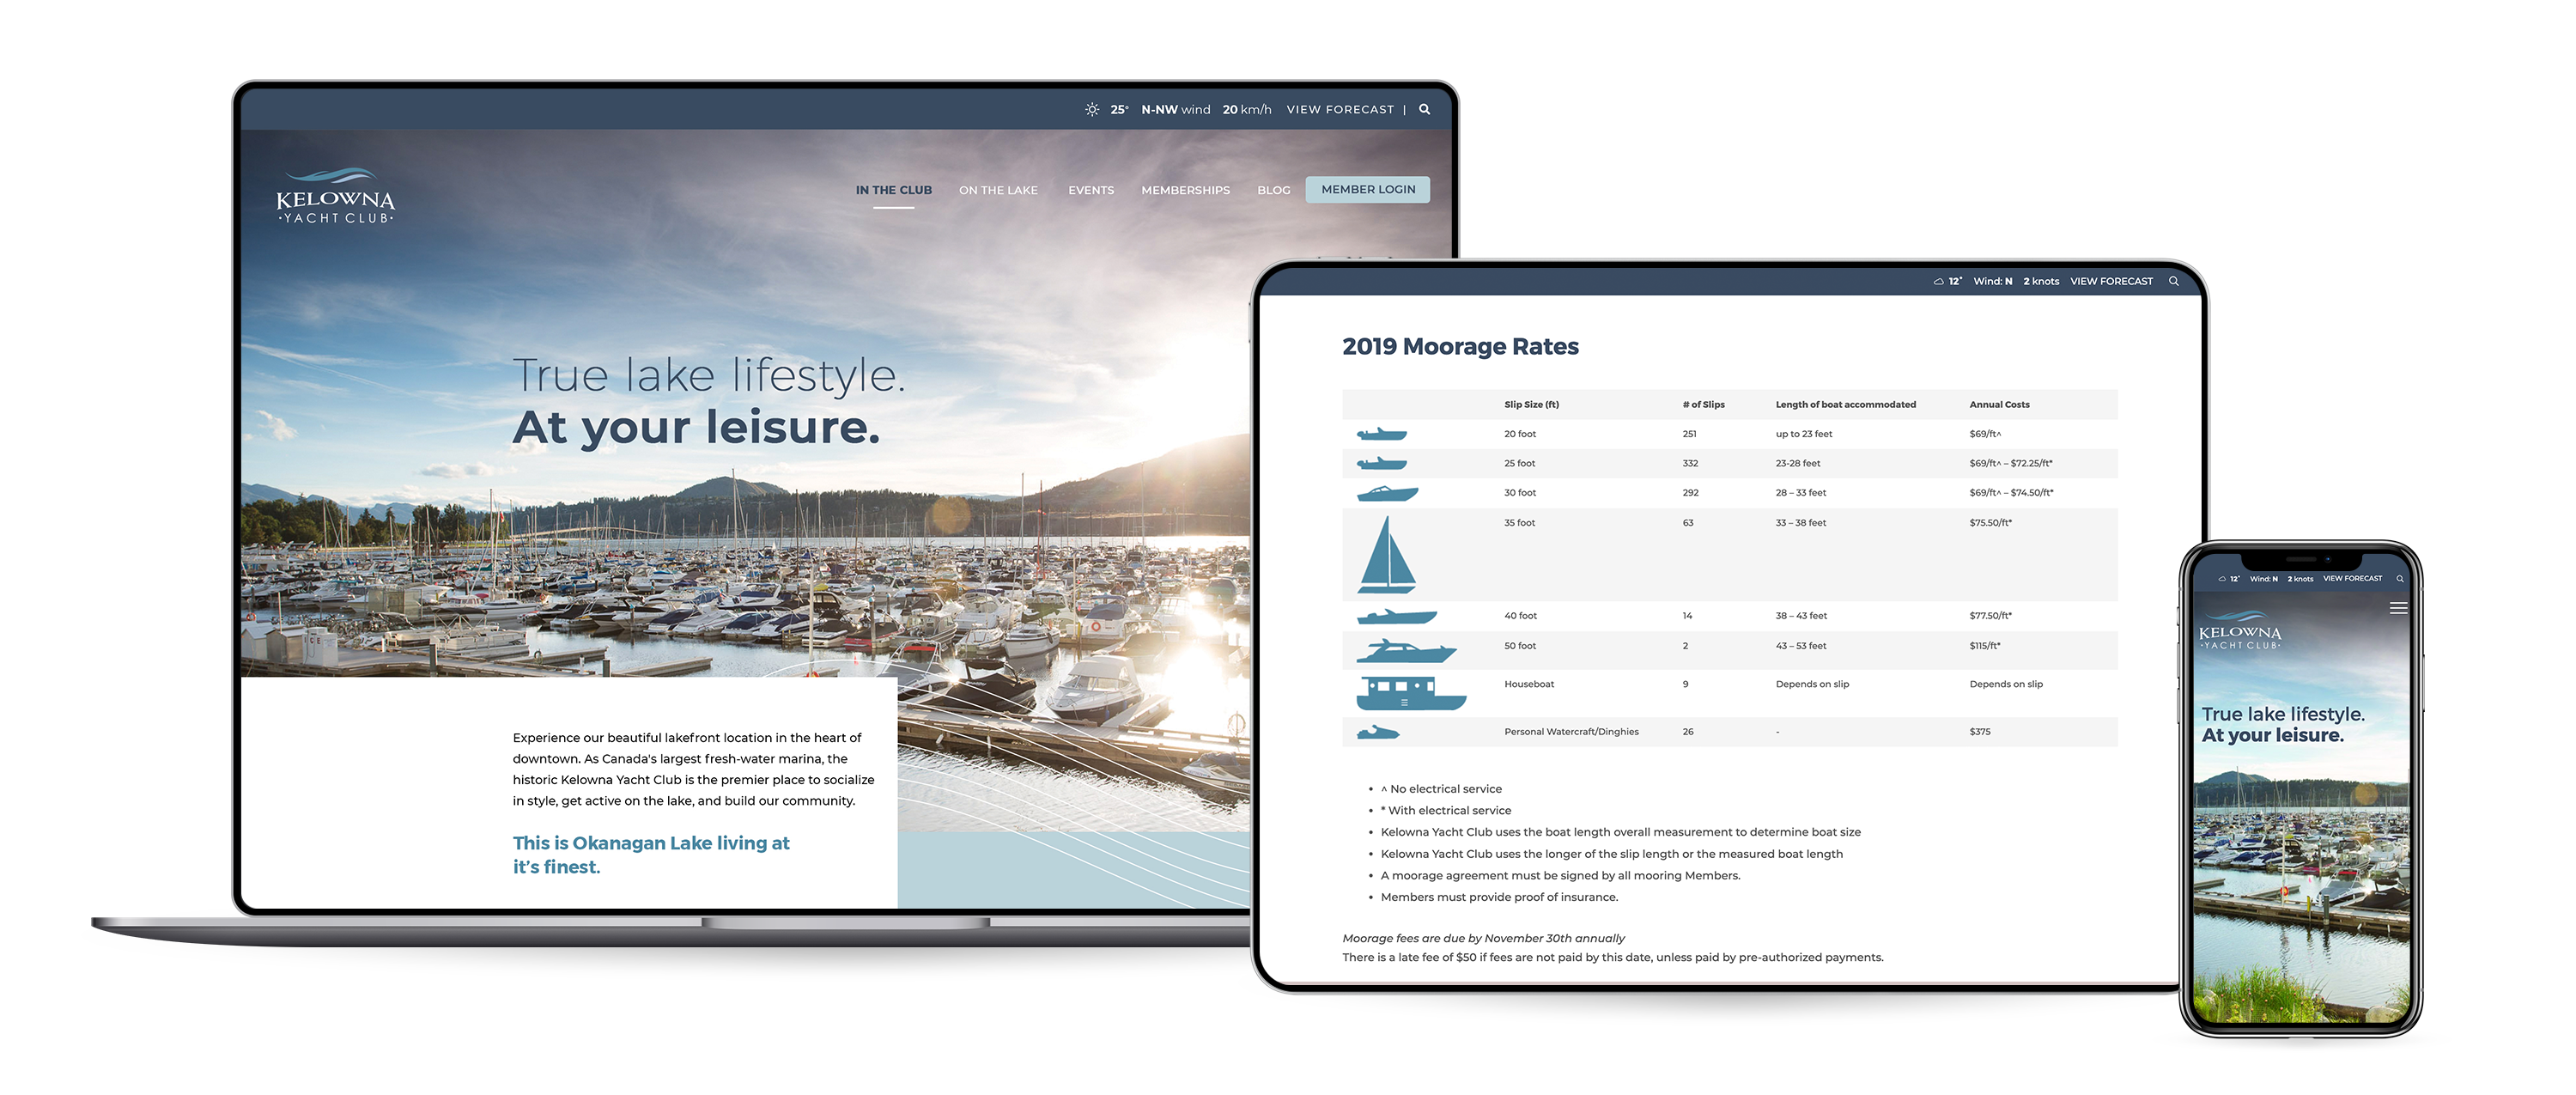 Kelowna Yacht Club Website Mockups on multiple devices